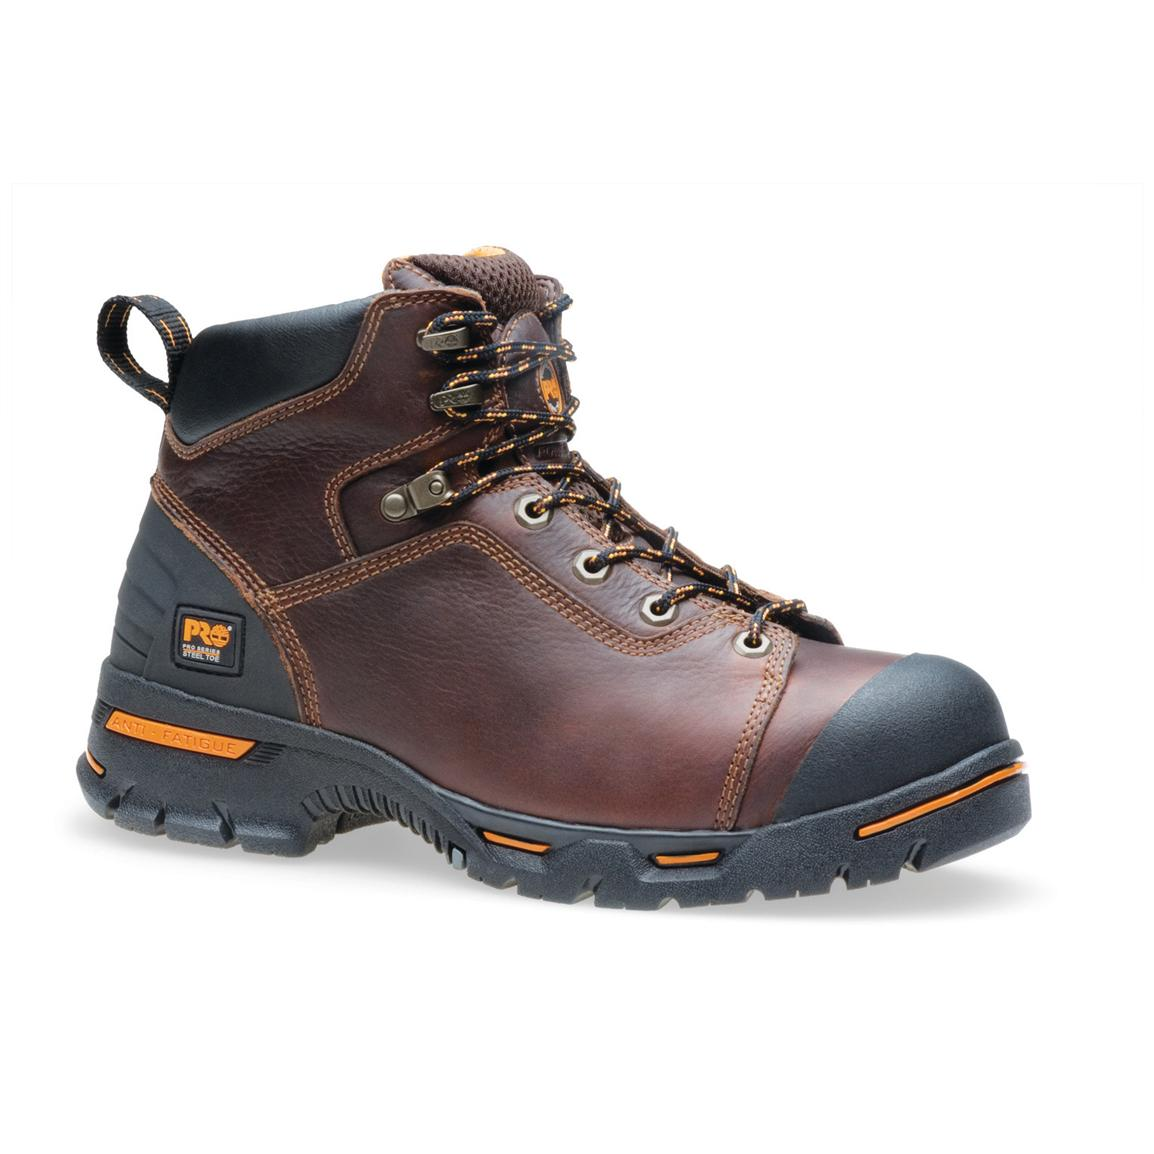 "Men's 6"" Timberland Pro® Endurance™ Steel Toe Boots, Briar"